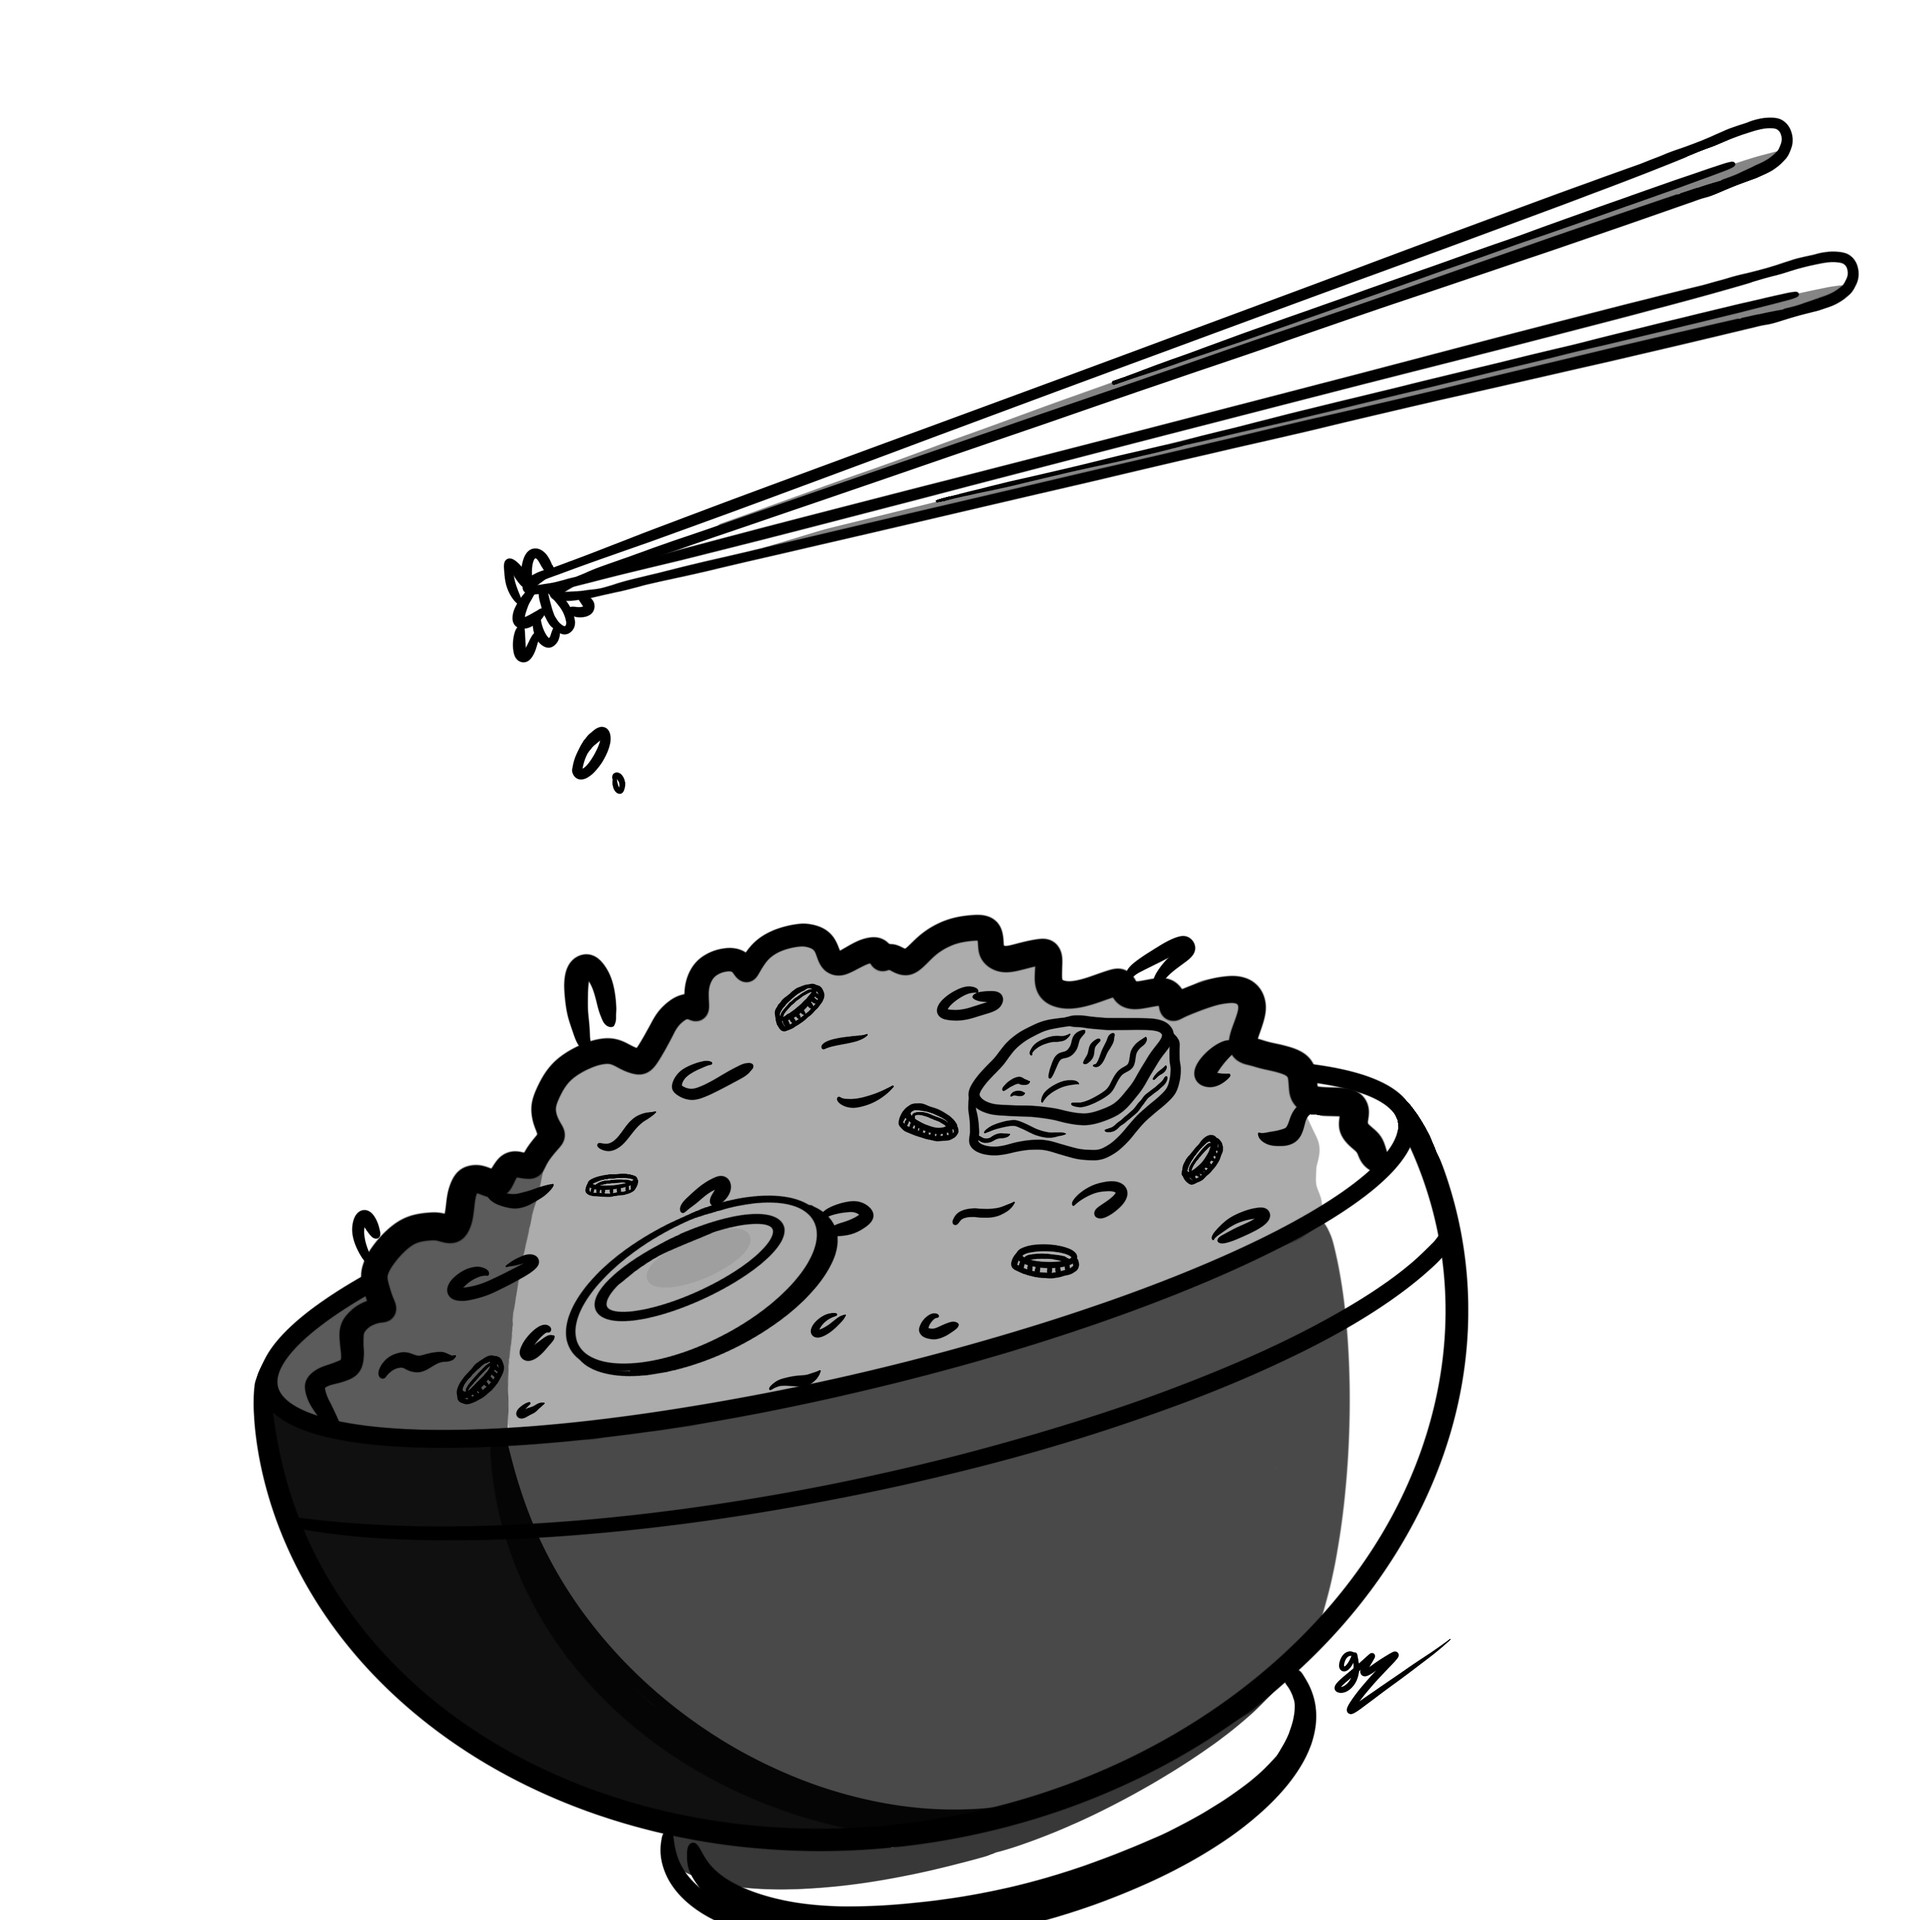 Bowl of rice.jpg